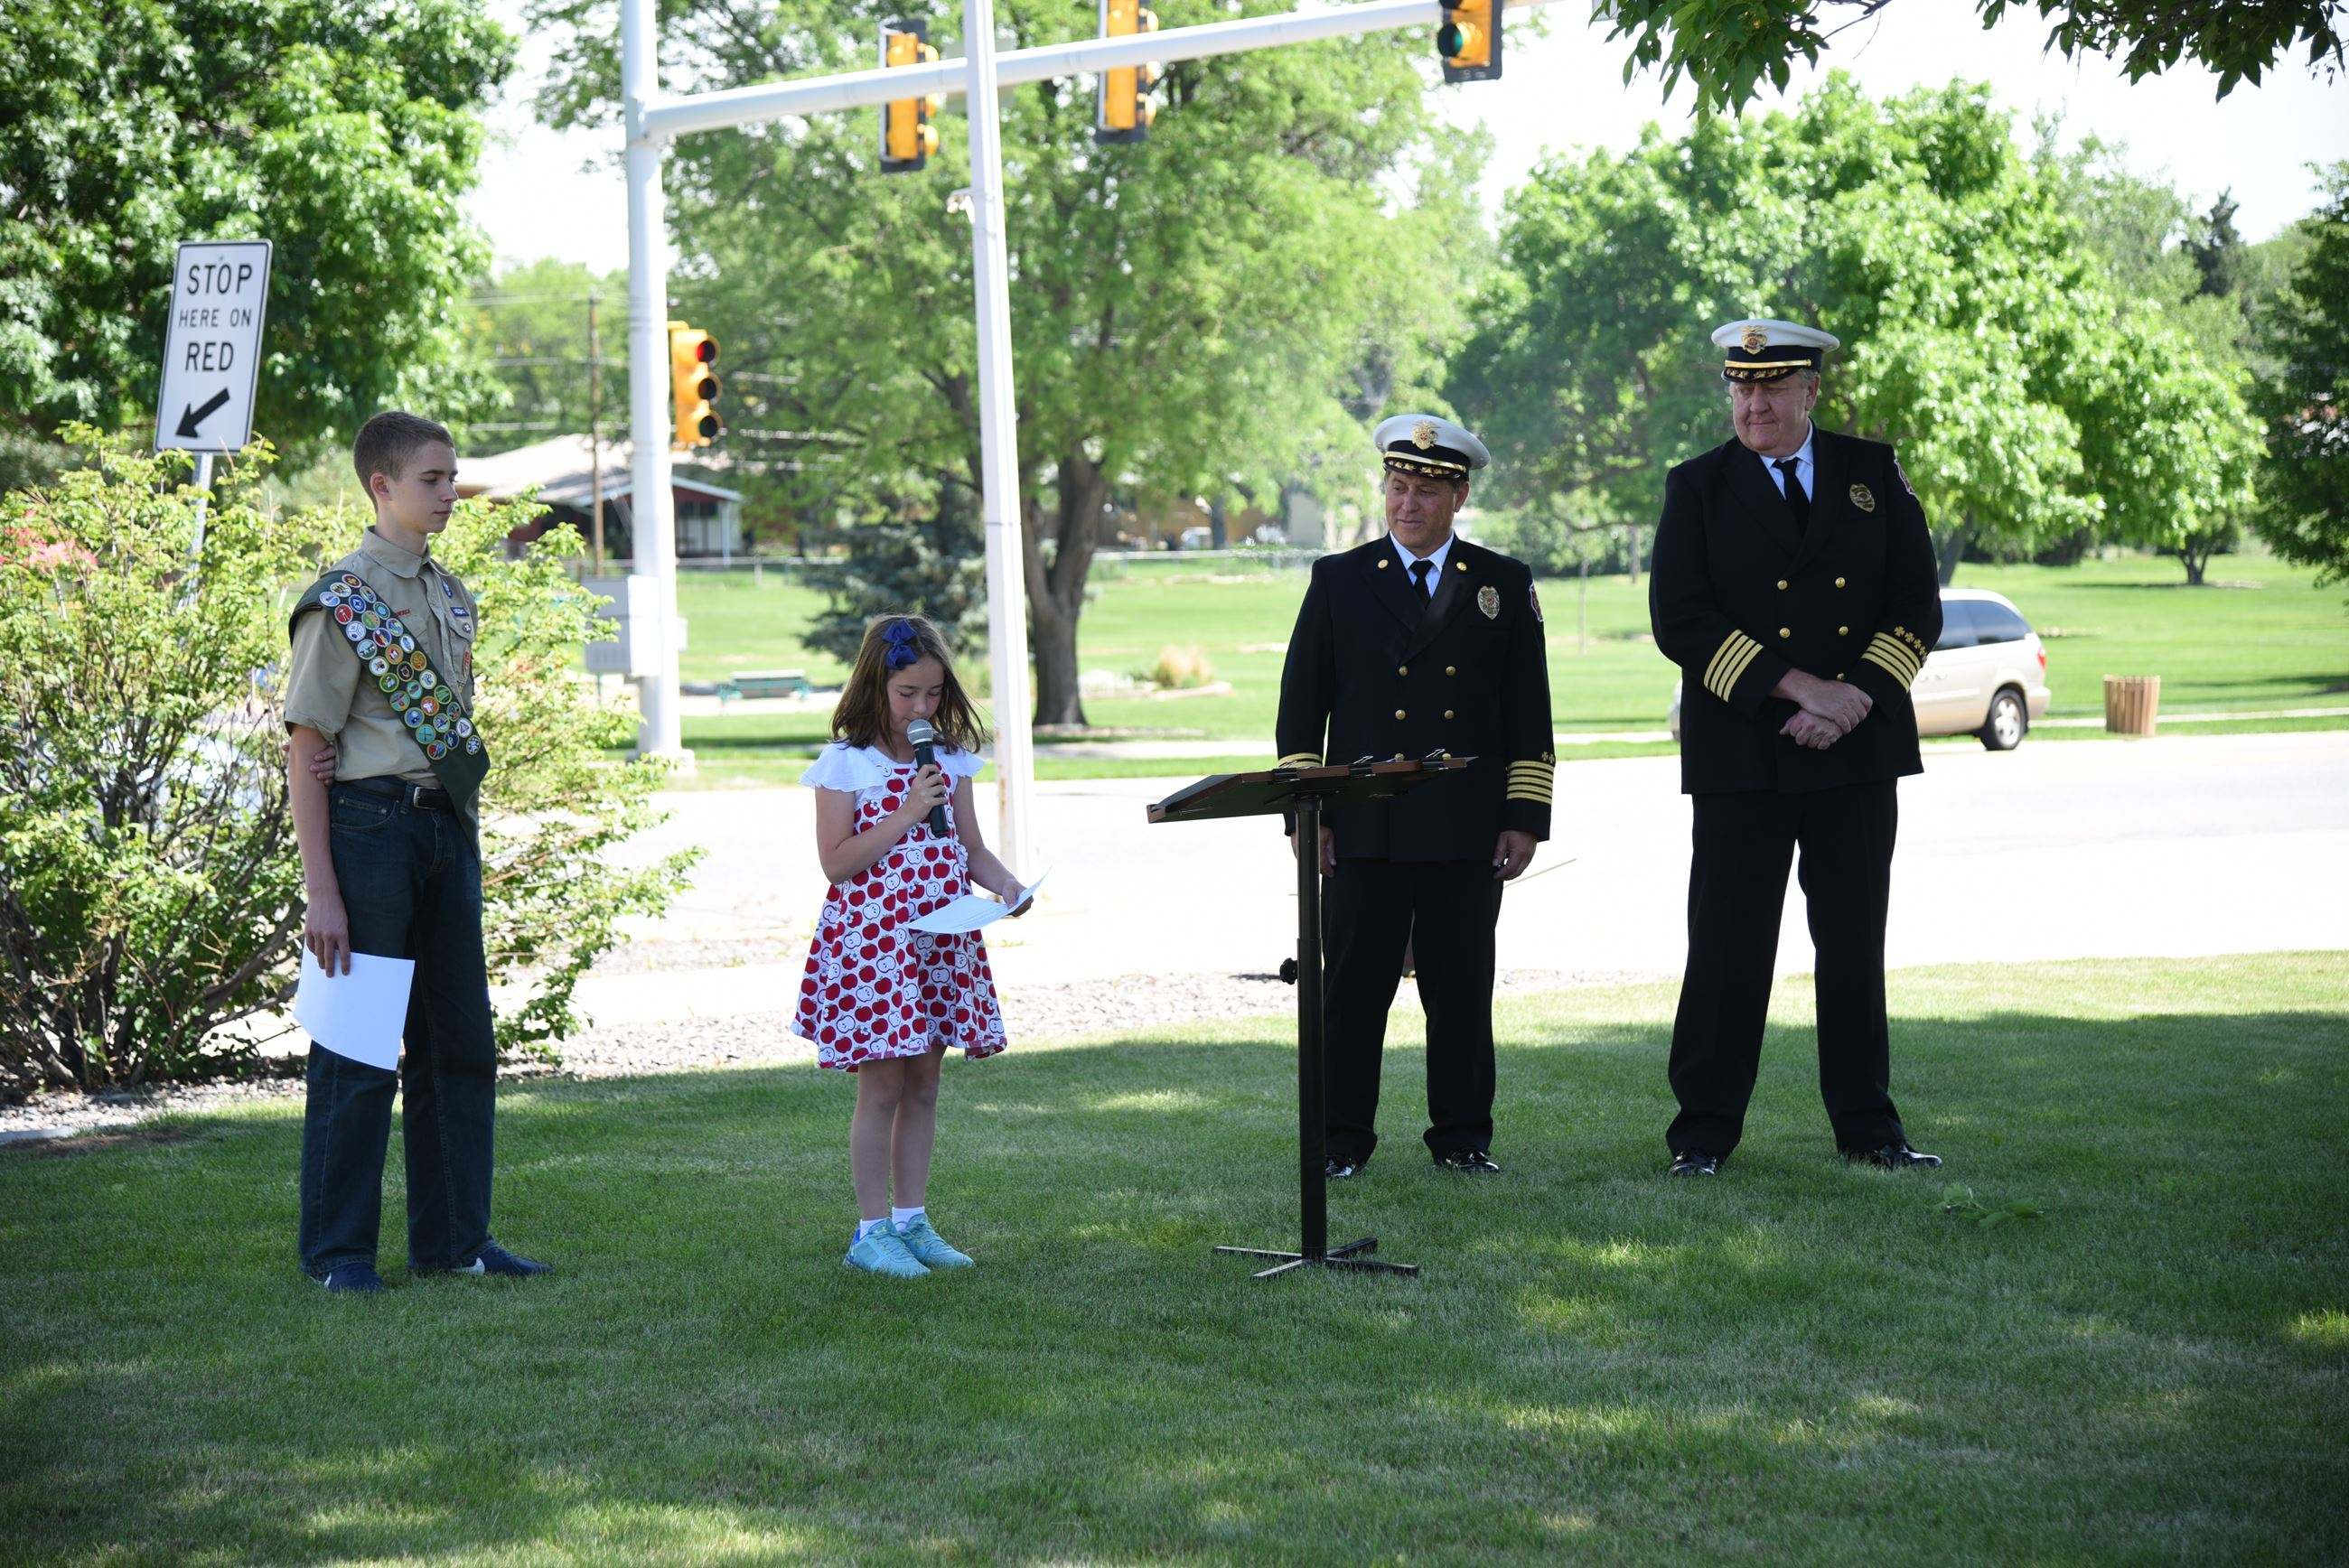 Two winners of the Flag Retirement Ceremony essay contest read their essays before the crowd at the